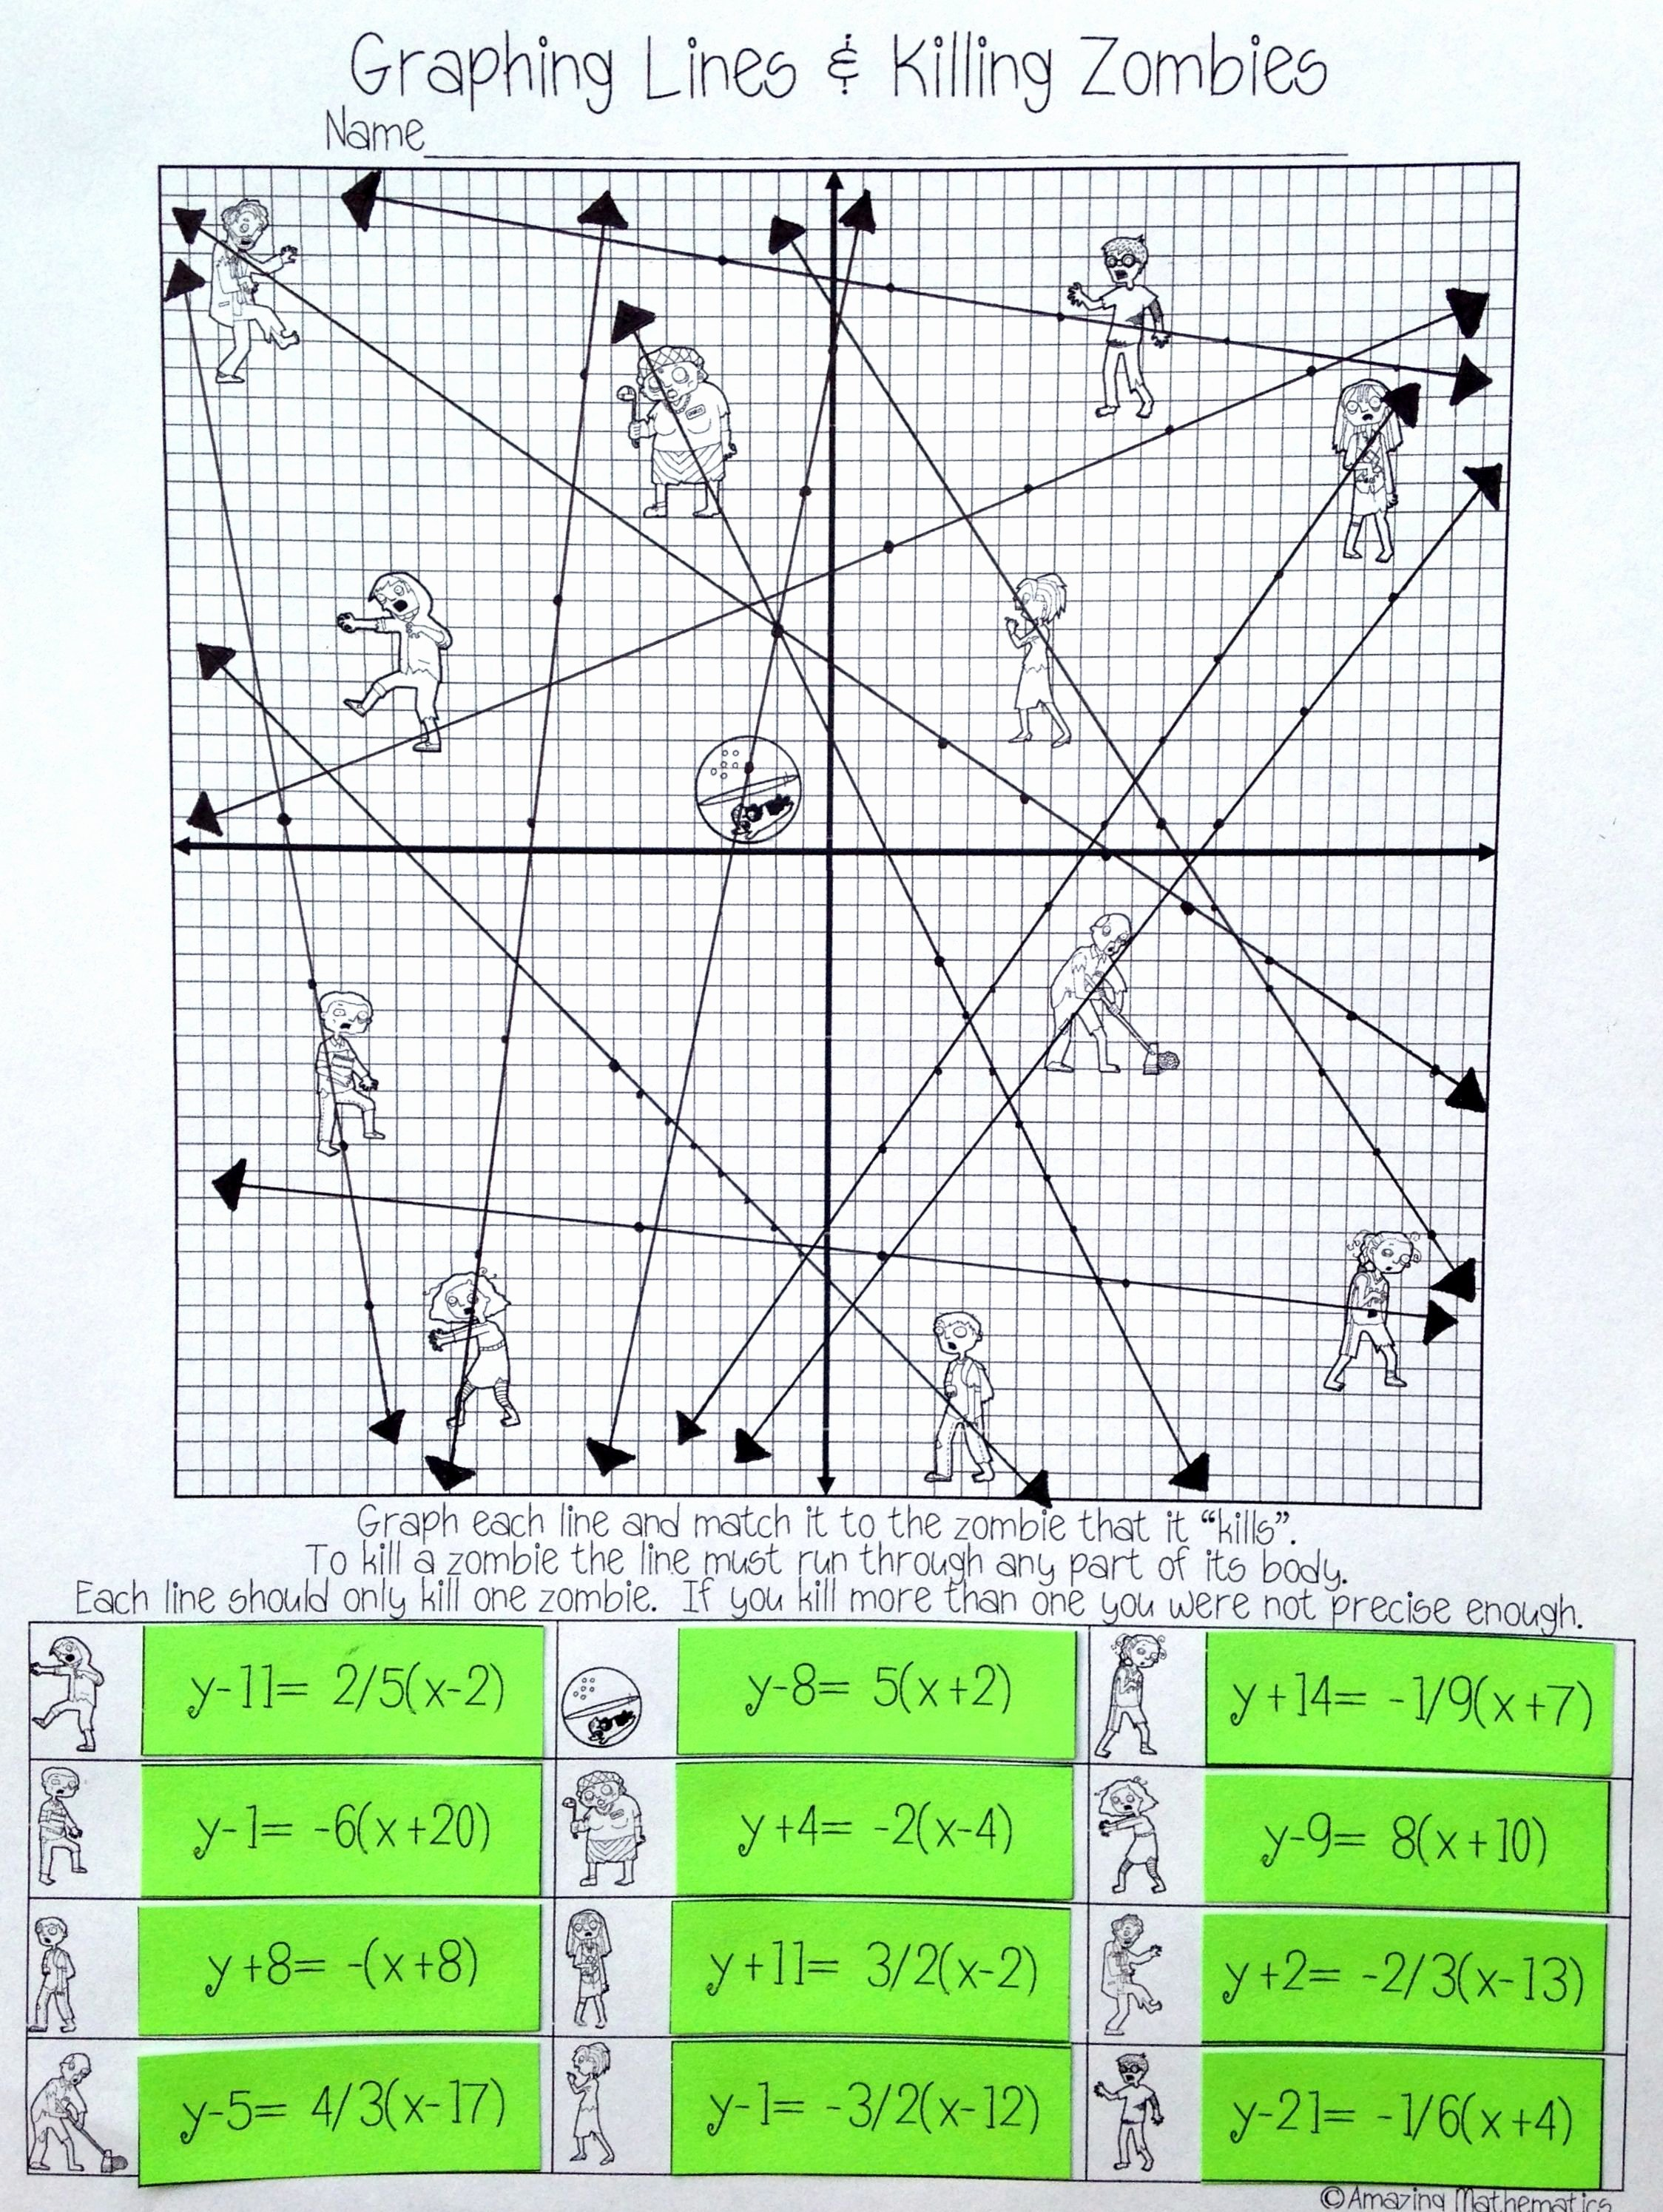 Point Slope form Practice Worksheet Fresh Graphing Lines & Zombies Point Slope form